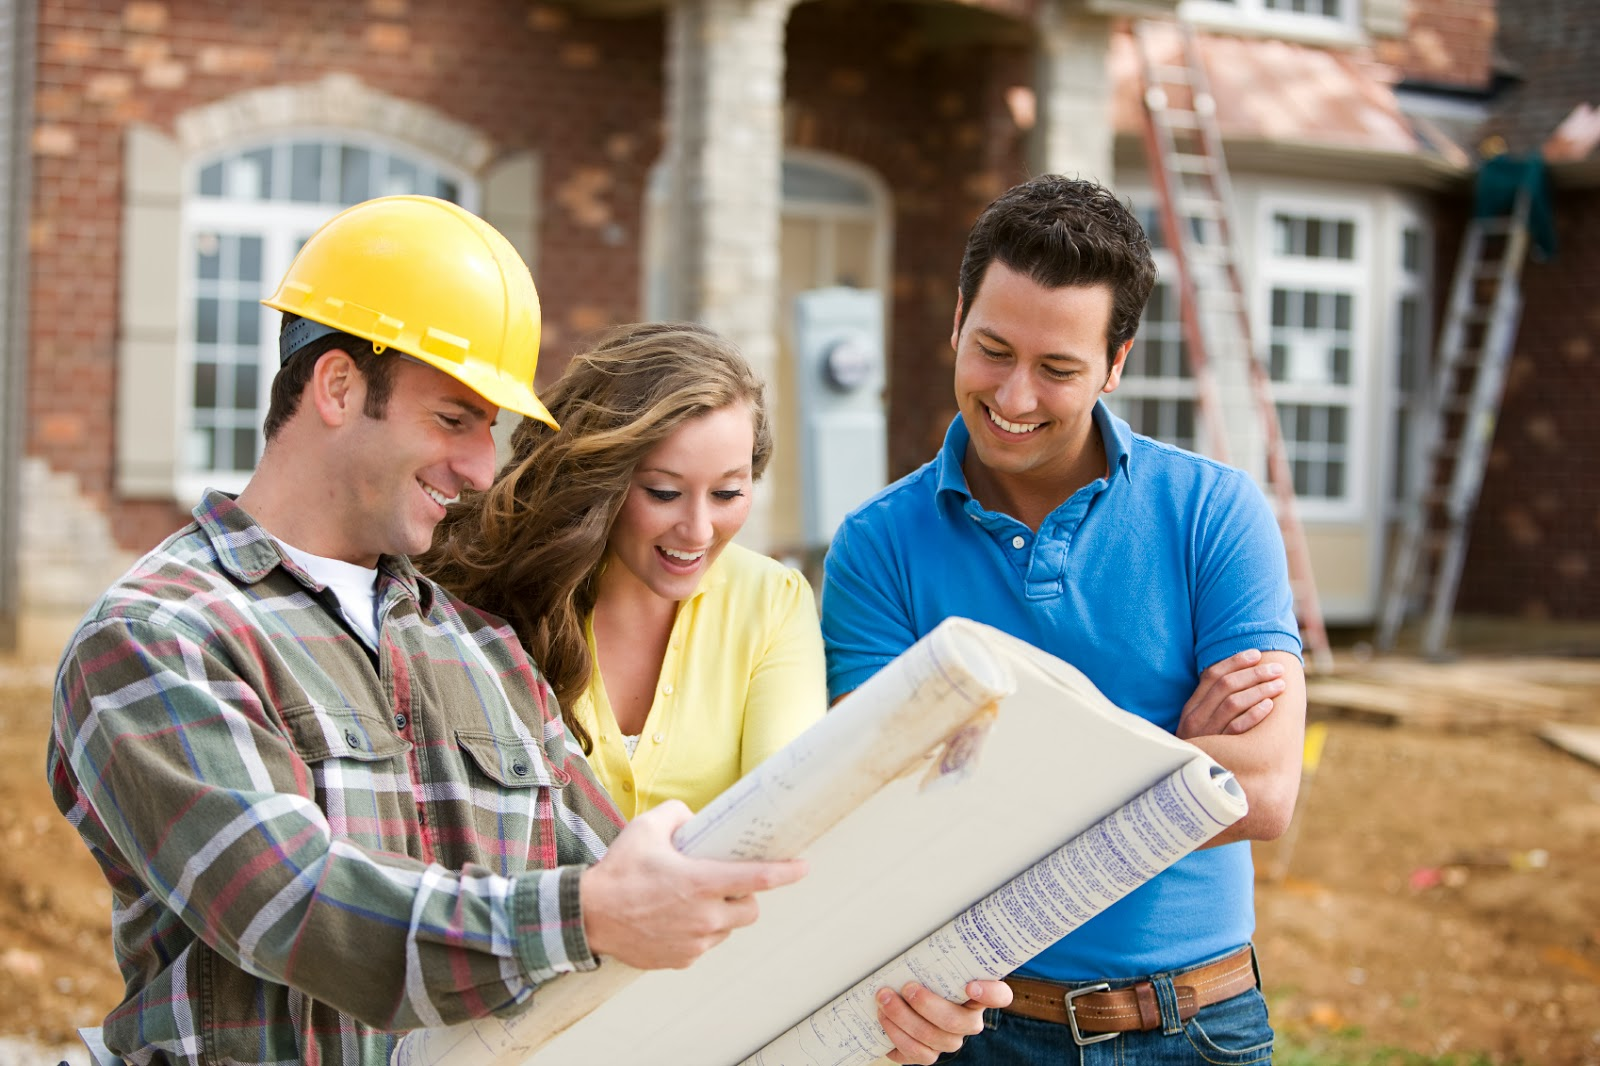 5 Important Things to Know When Hiring Contractors For Your Home